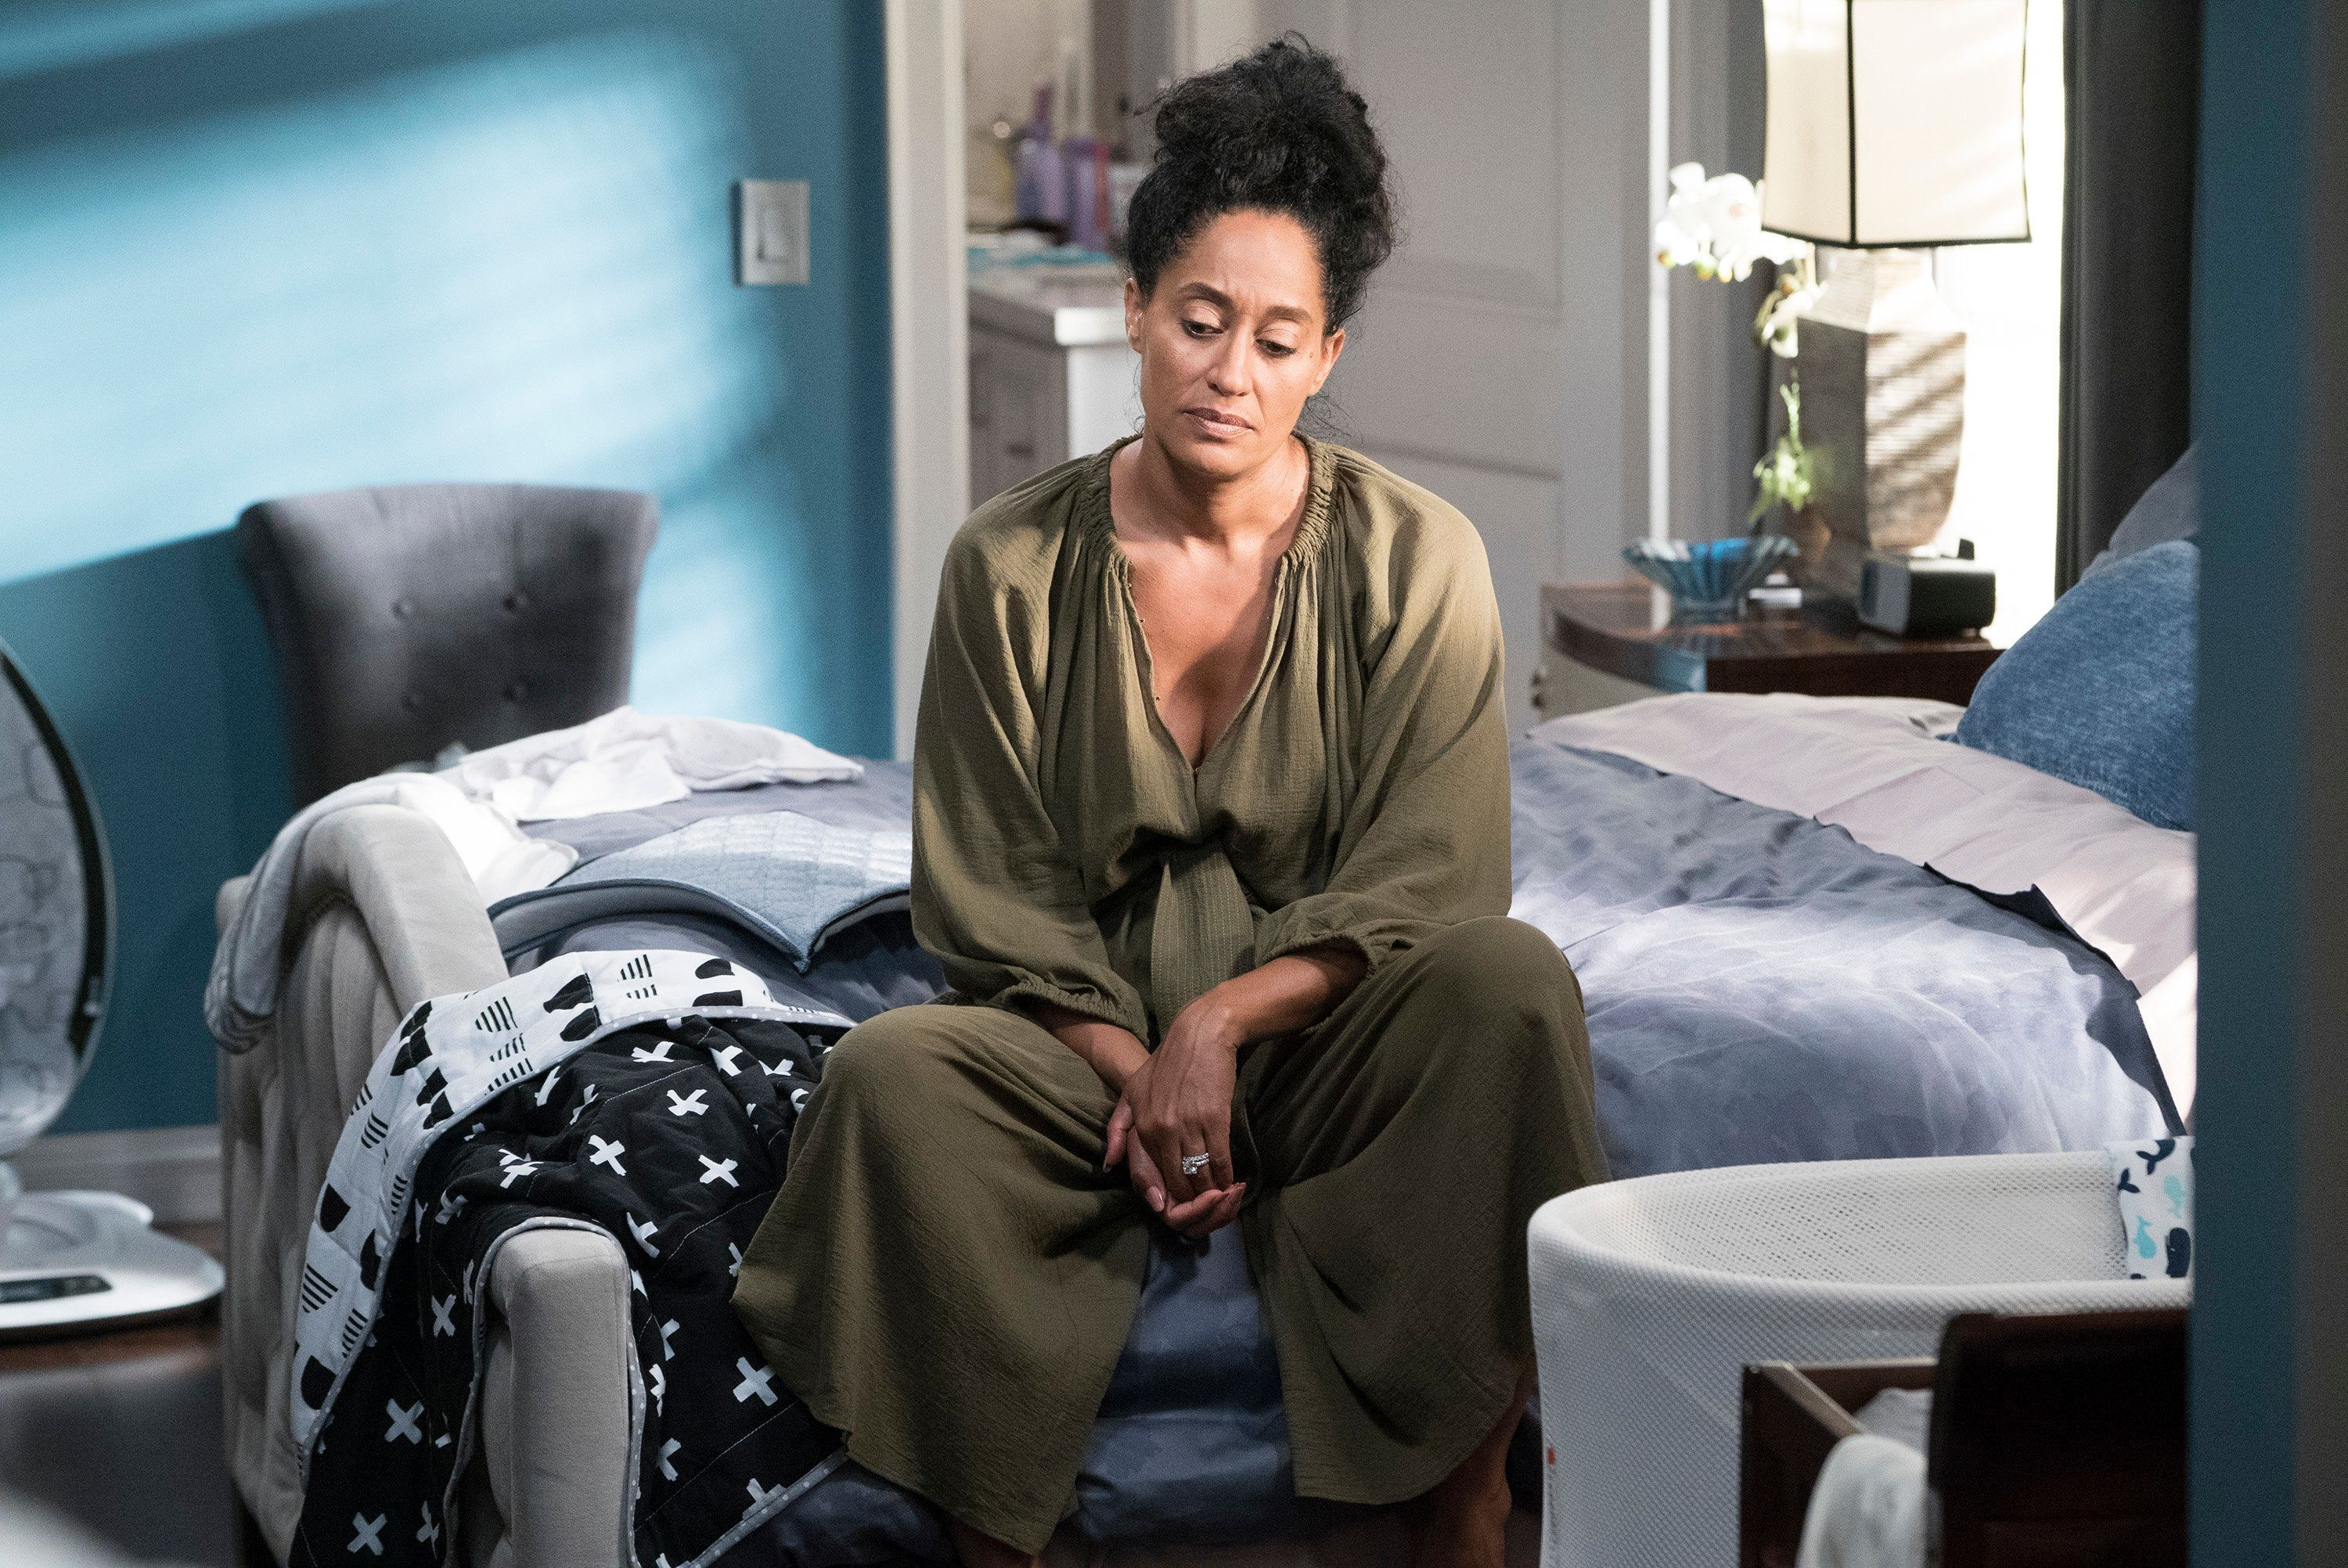 In the episode, Rainbow Johnson (played by Tracee Ellis Ross) is in denial about having postpartum depression and feels weak